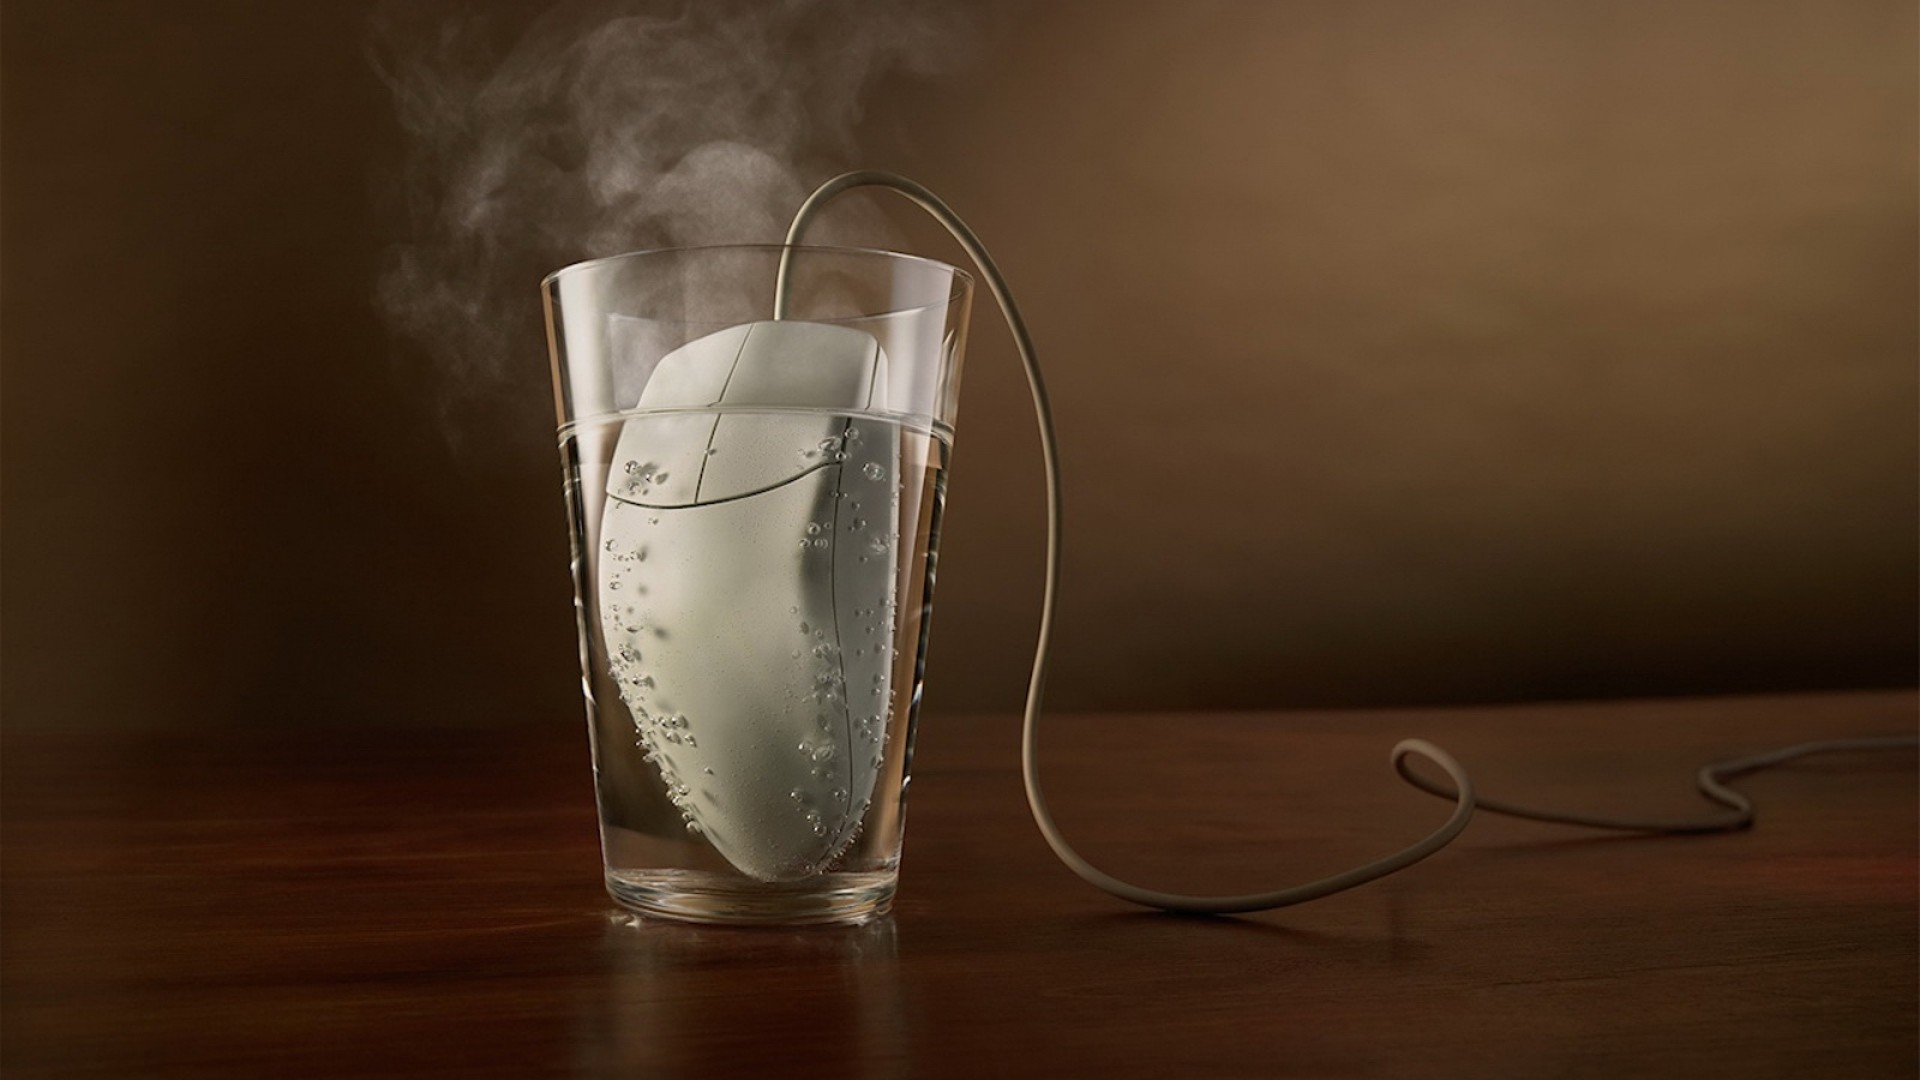 Wallpaper glass, steam, mouse, water, table